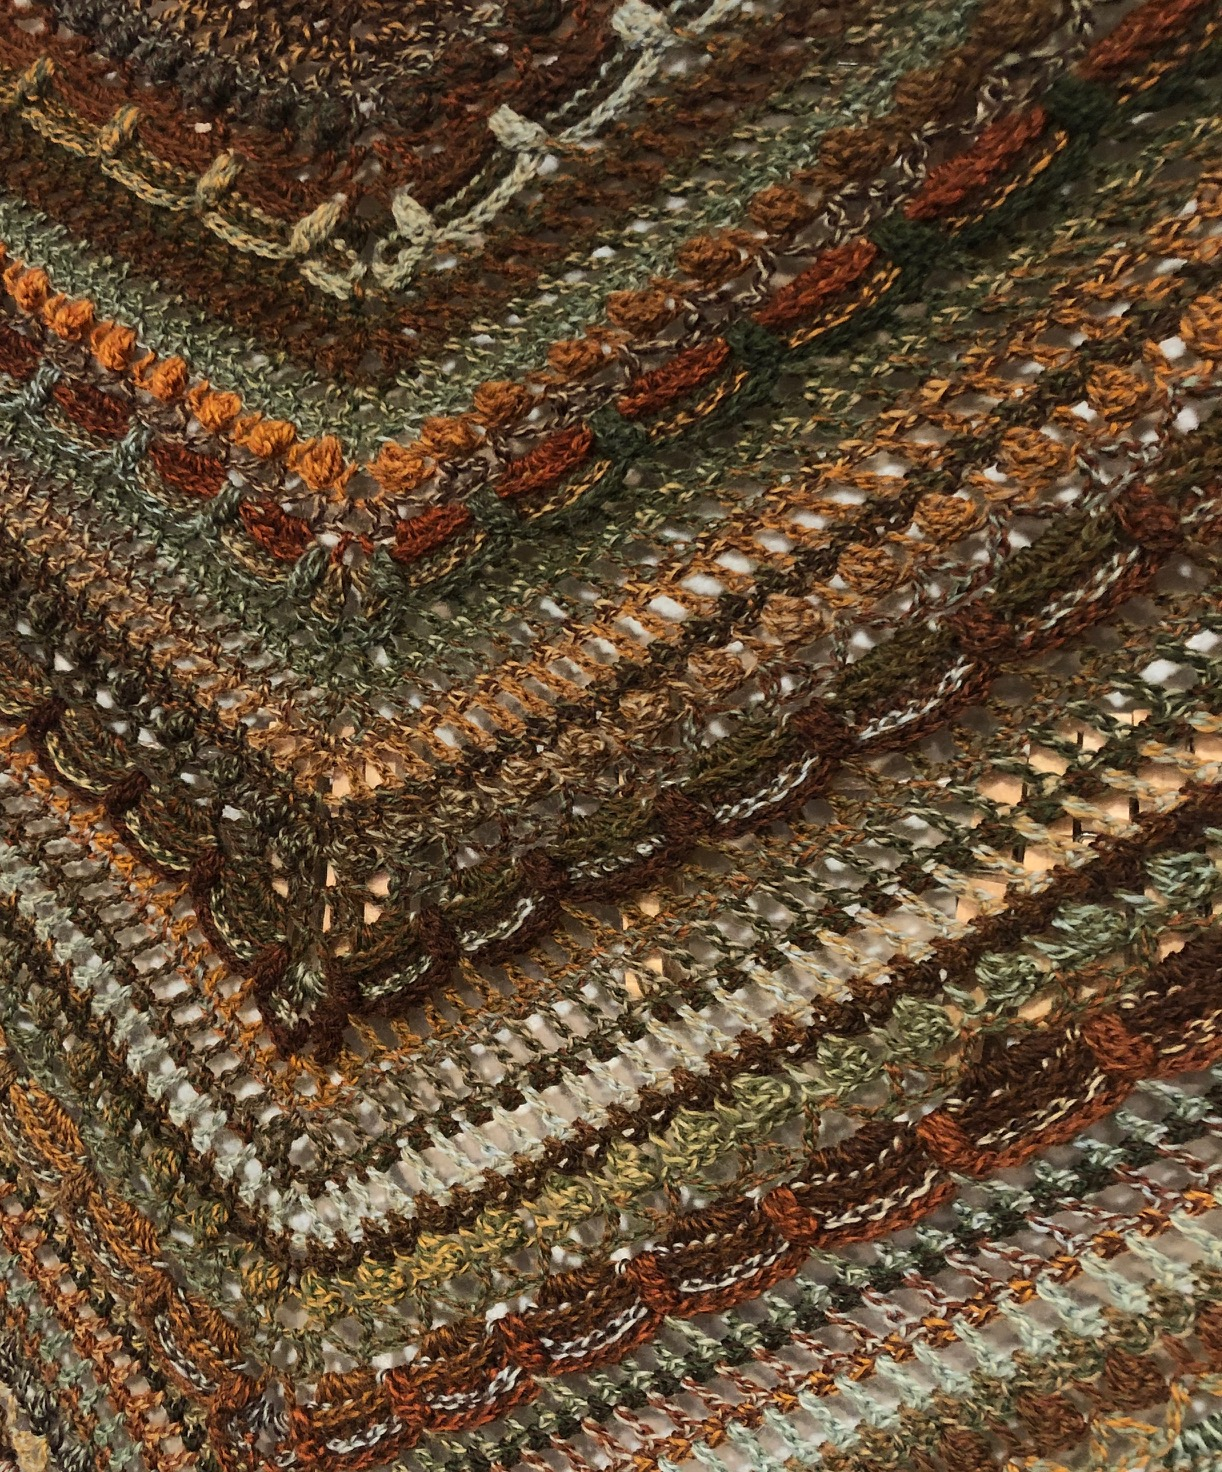 close-up view of crocheted shawl in browns and fall colors